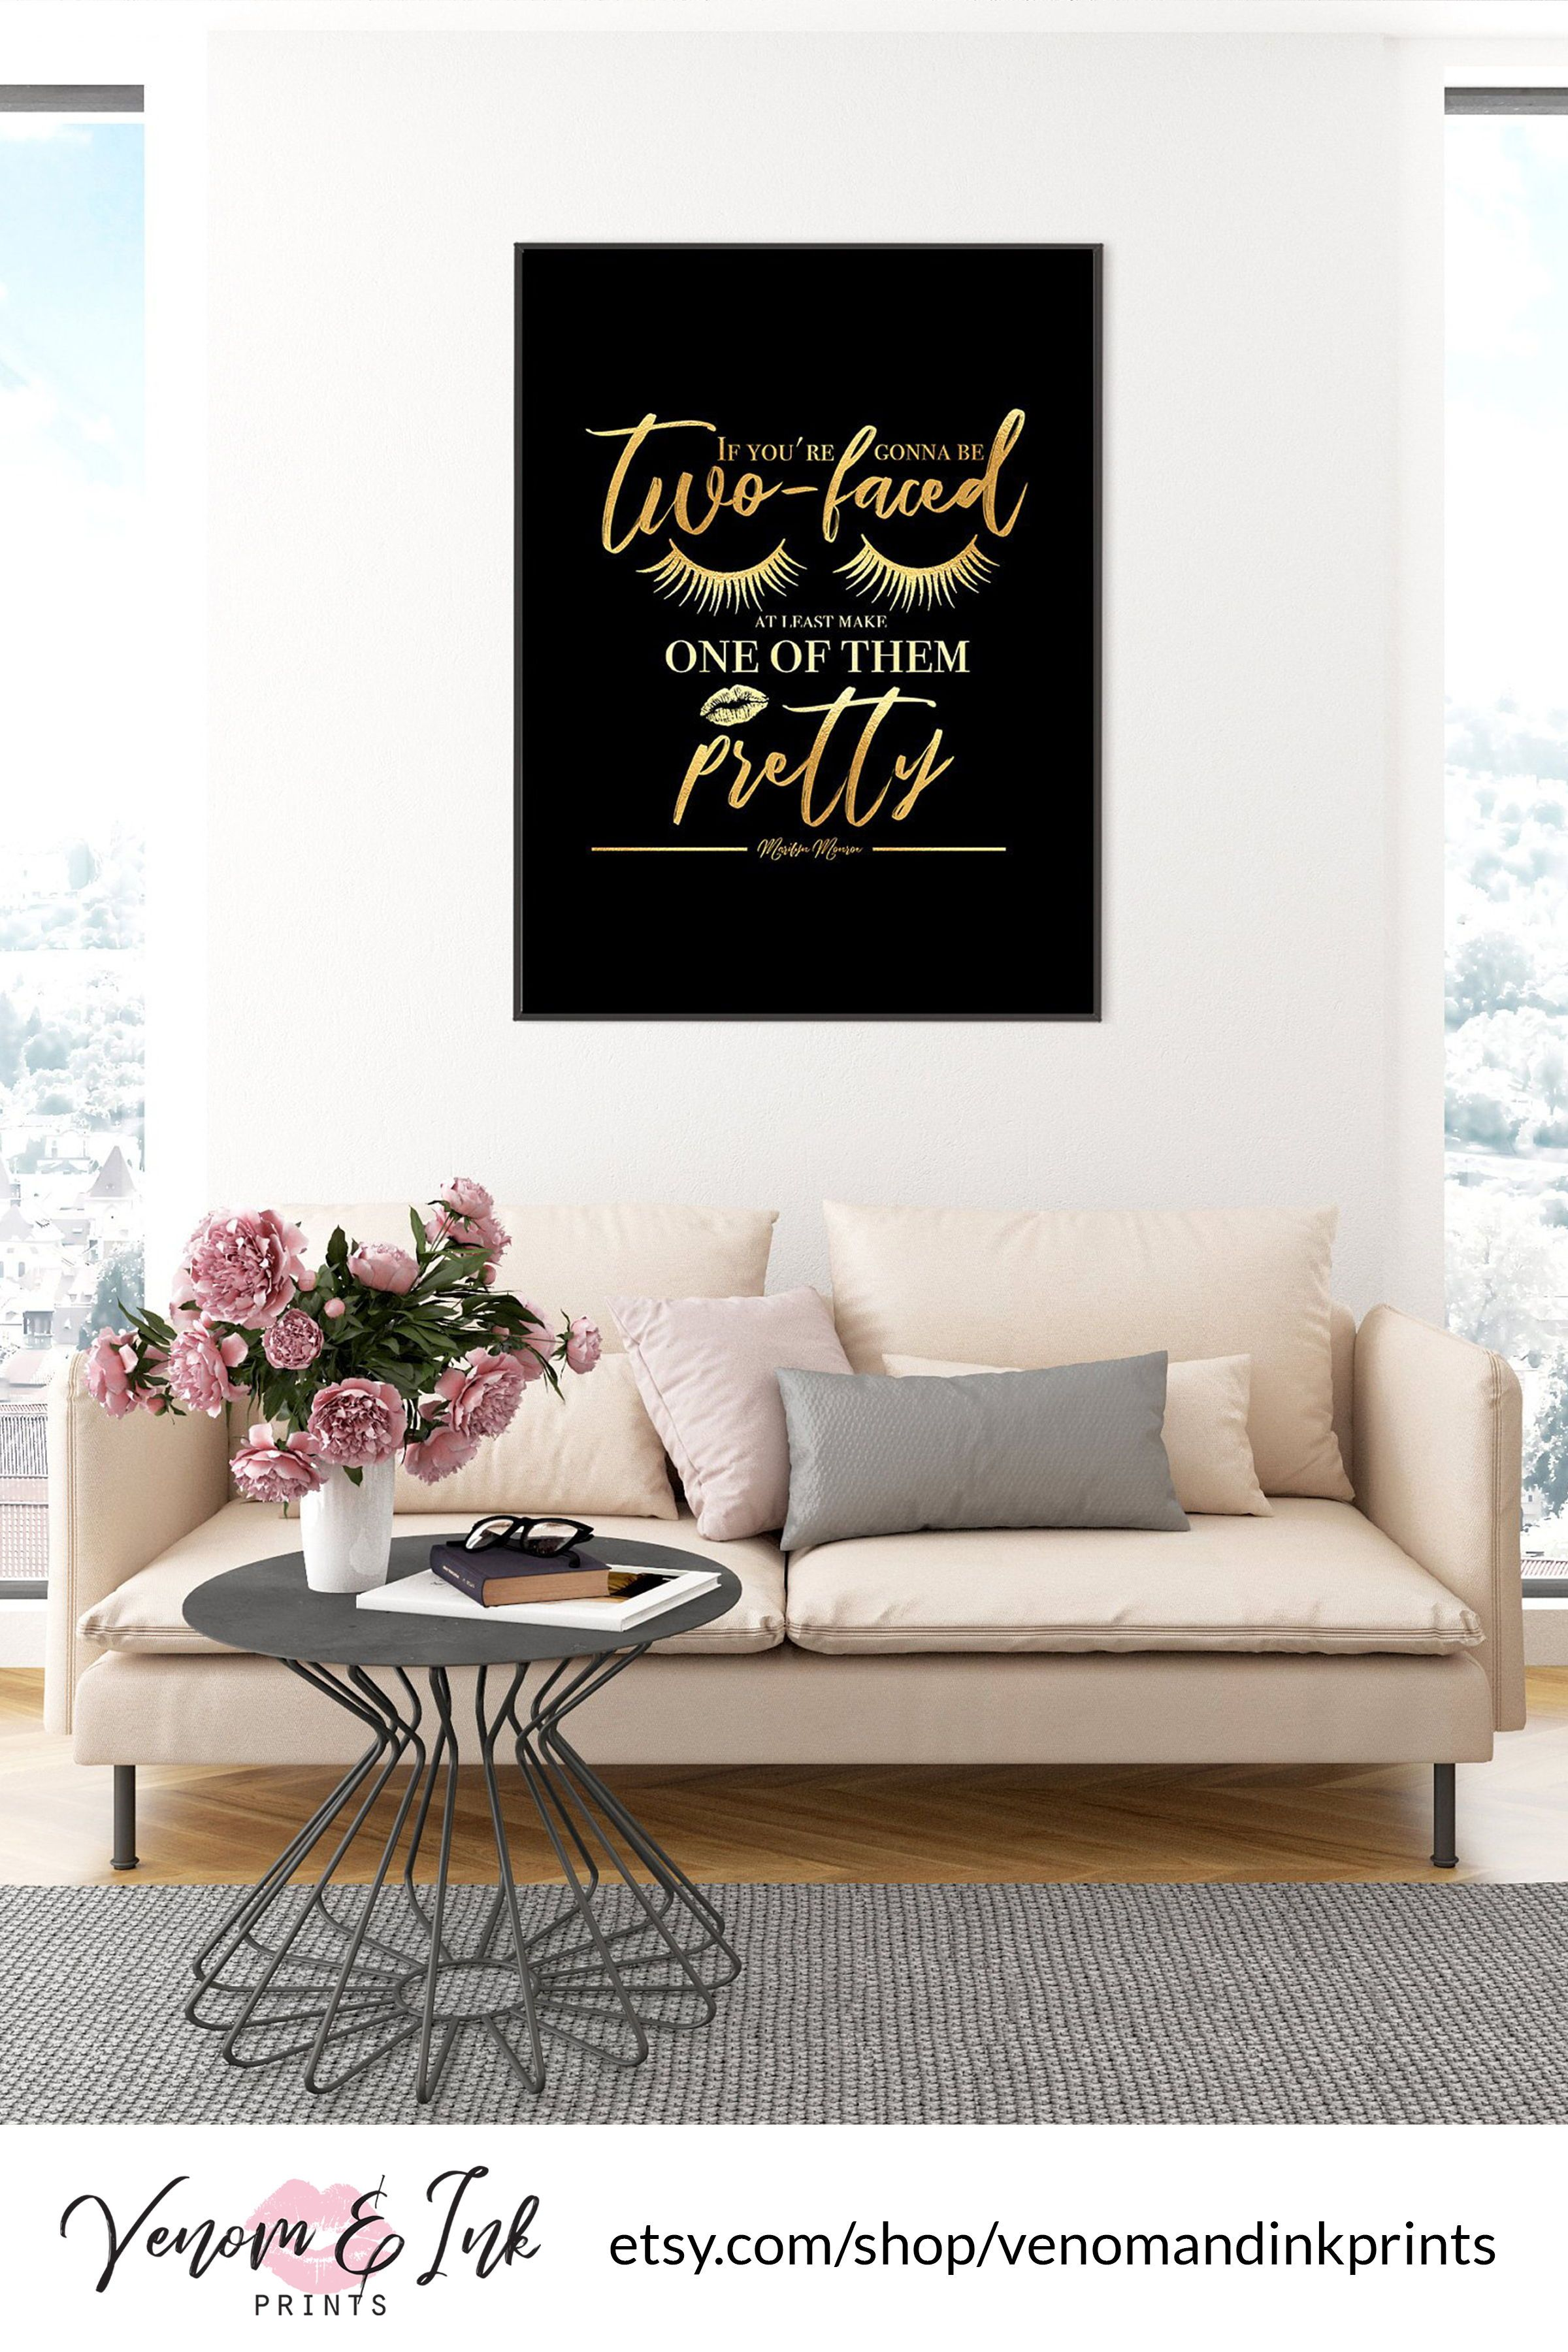 Marilyn Monroe Quote Wall Art Black And Gold Printable Black And Gold Print Black And Gold Decor Black And Gold Wall Art Gold Foil Print Gold Decor Gold Wall Art Black And